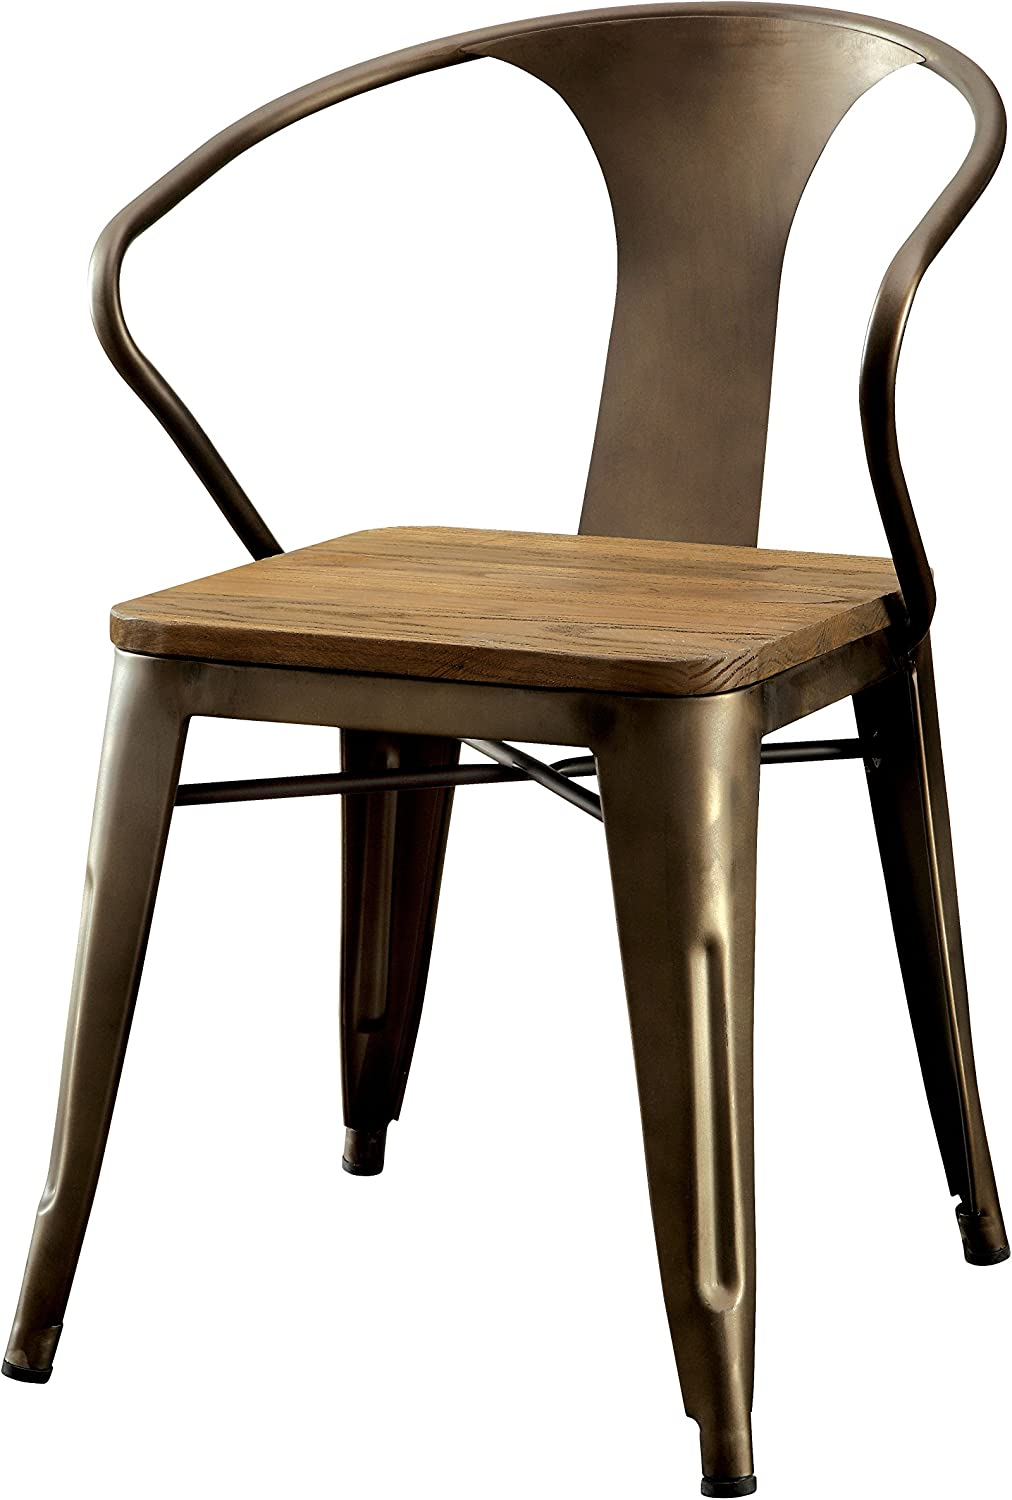 Furniture of America Cadiz Industrial Dining Chair, Natural Elm Finish, Set of 2